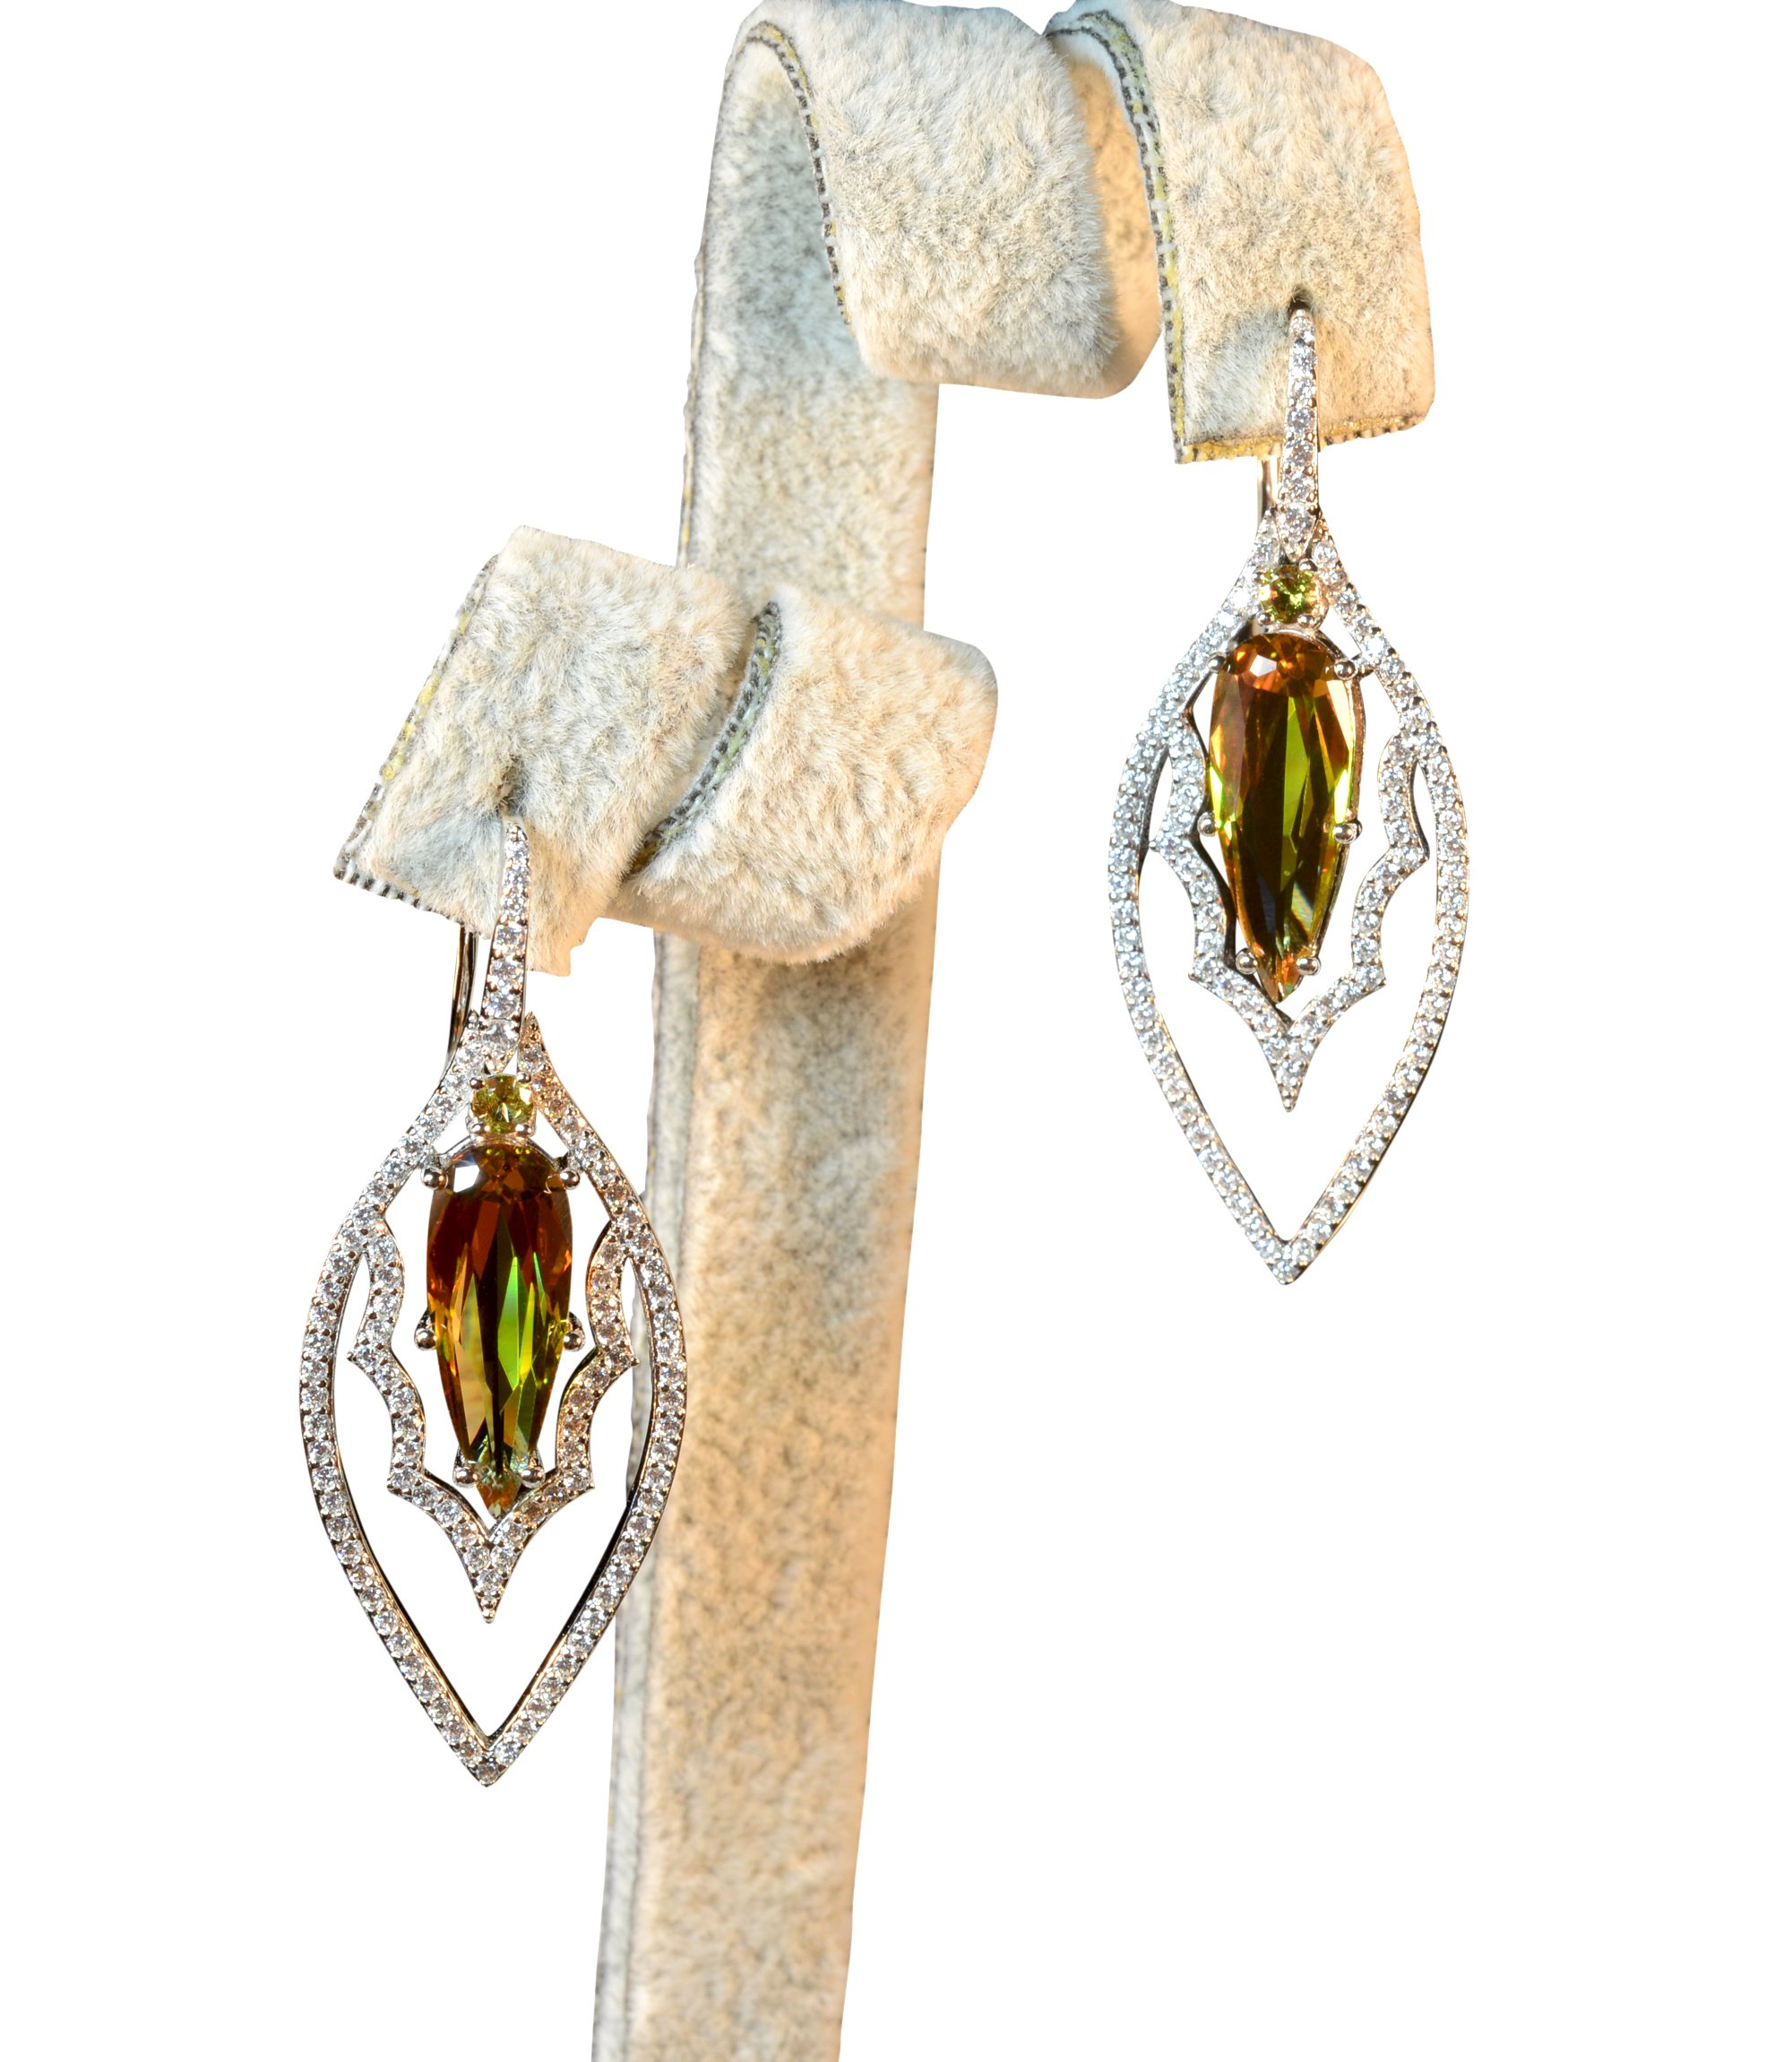 Tingle Alexandrite Earrings Sterling Silver Fine Jewelry Color Change Gemstone Teartrop Gothic Earrings Silver Earrings for Women (Rhodium Plated Earrings) by Tingle (Image #2)